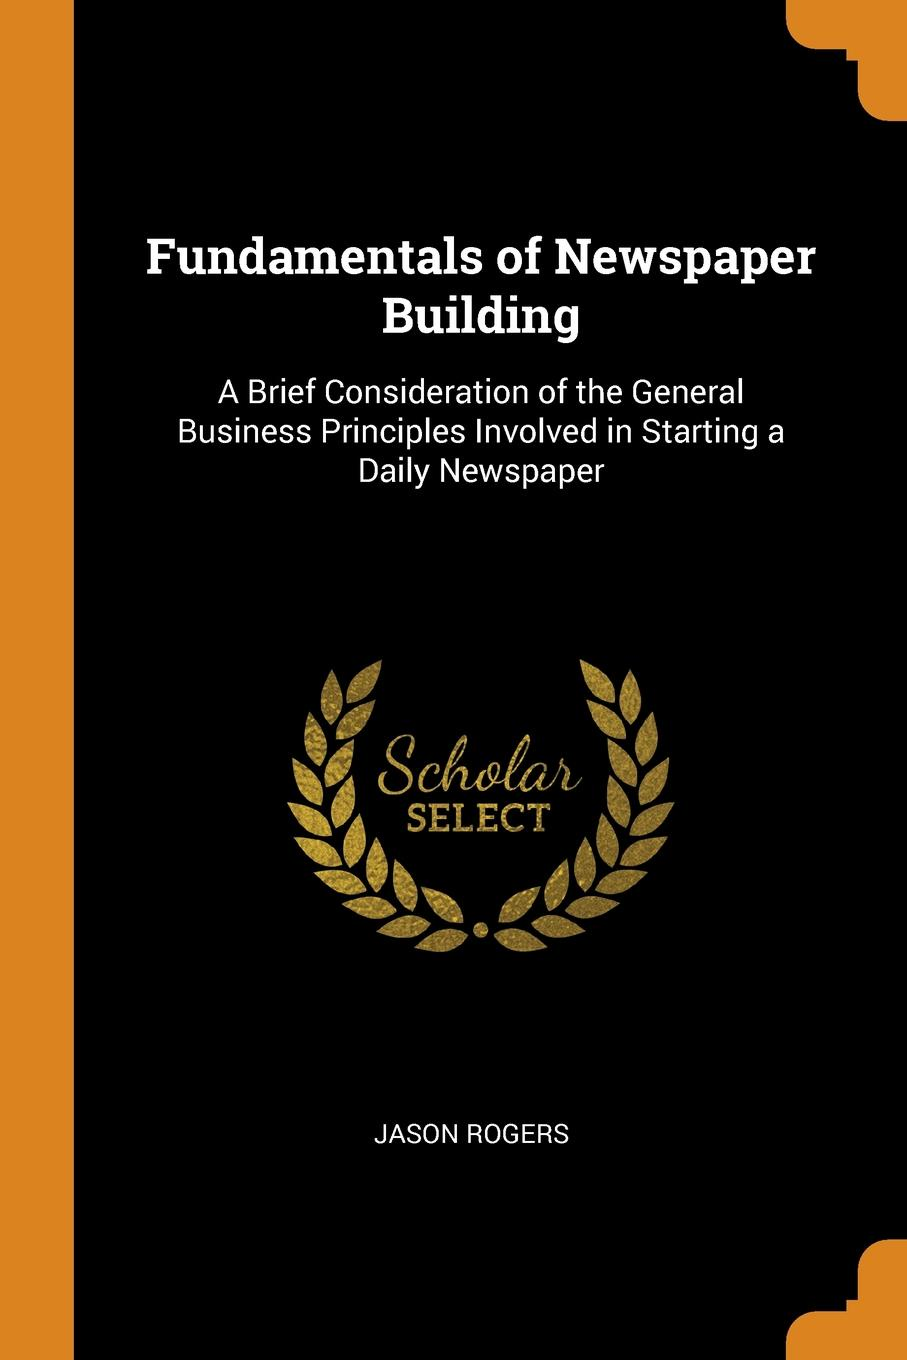 Fundamentals of Newspaper Building. A Brief Consideration of the General Business Principles Involved in Starting a Daily Newspaper. Jason Rogers